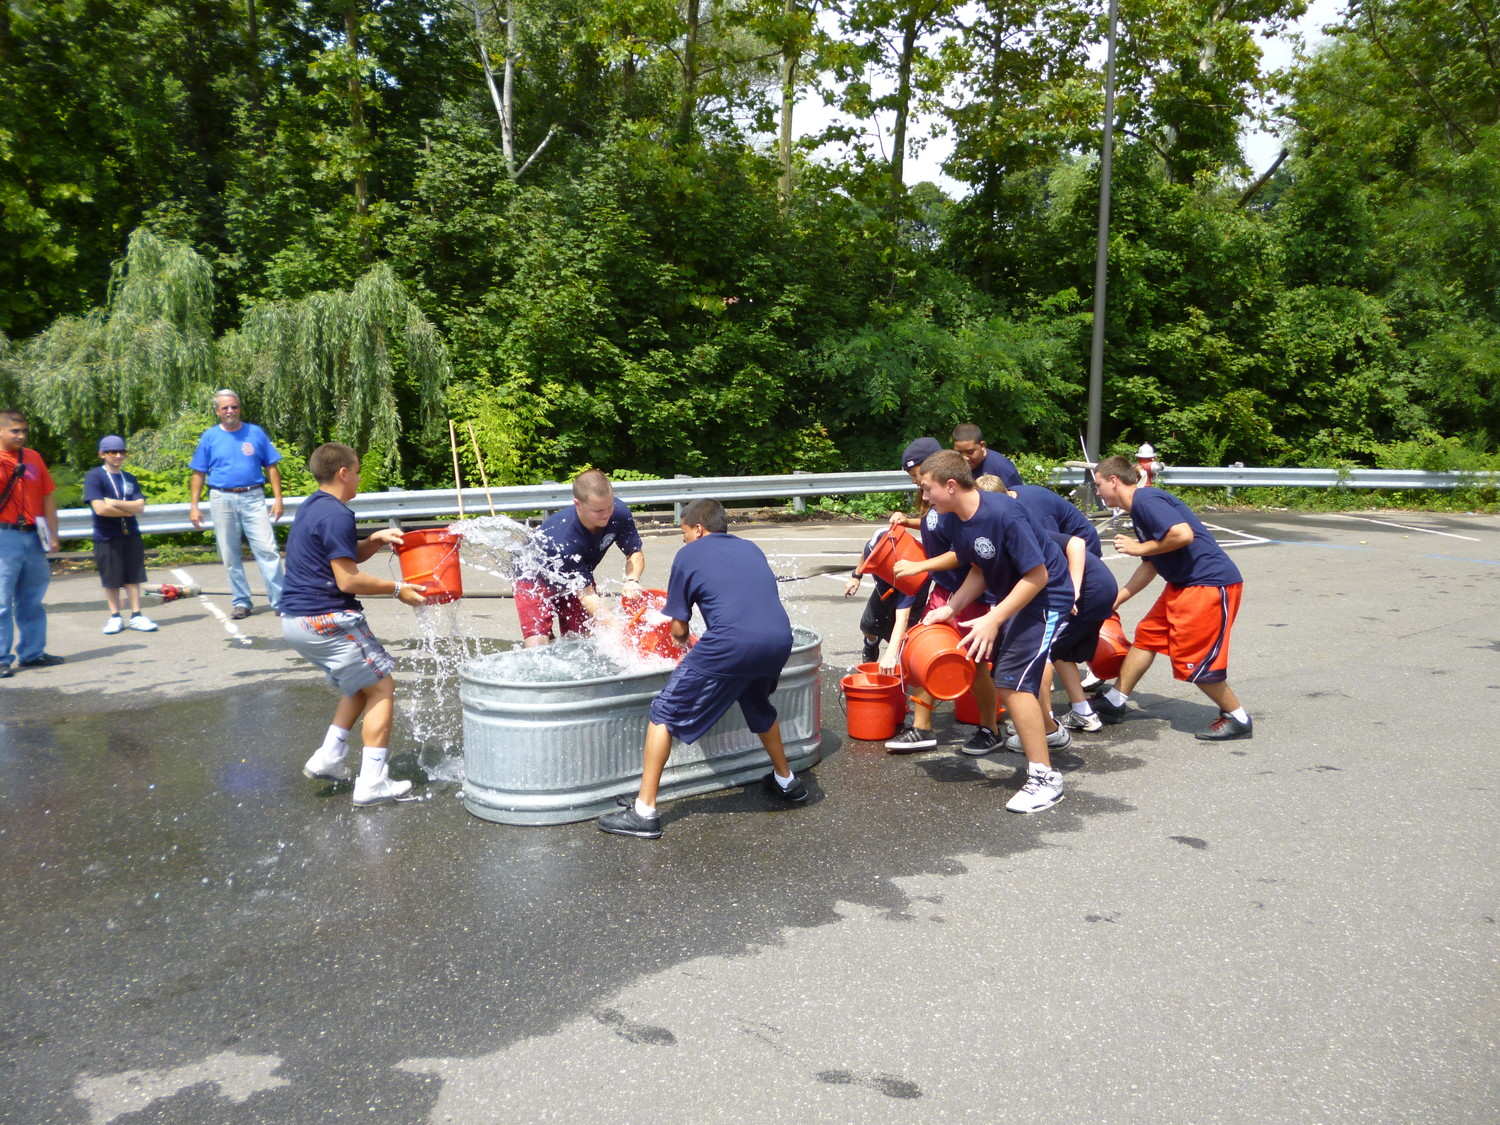 The Fire Explorers practice a number of firefighting skills, including the bucket brigade.